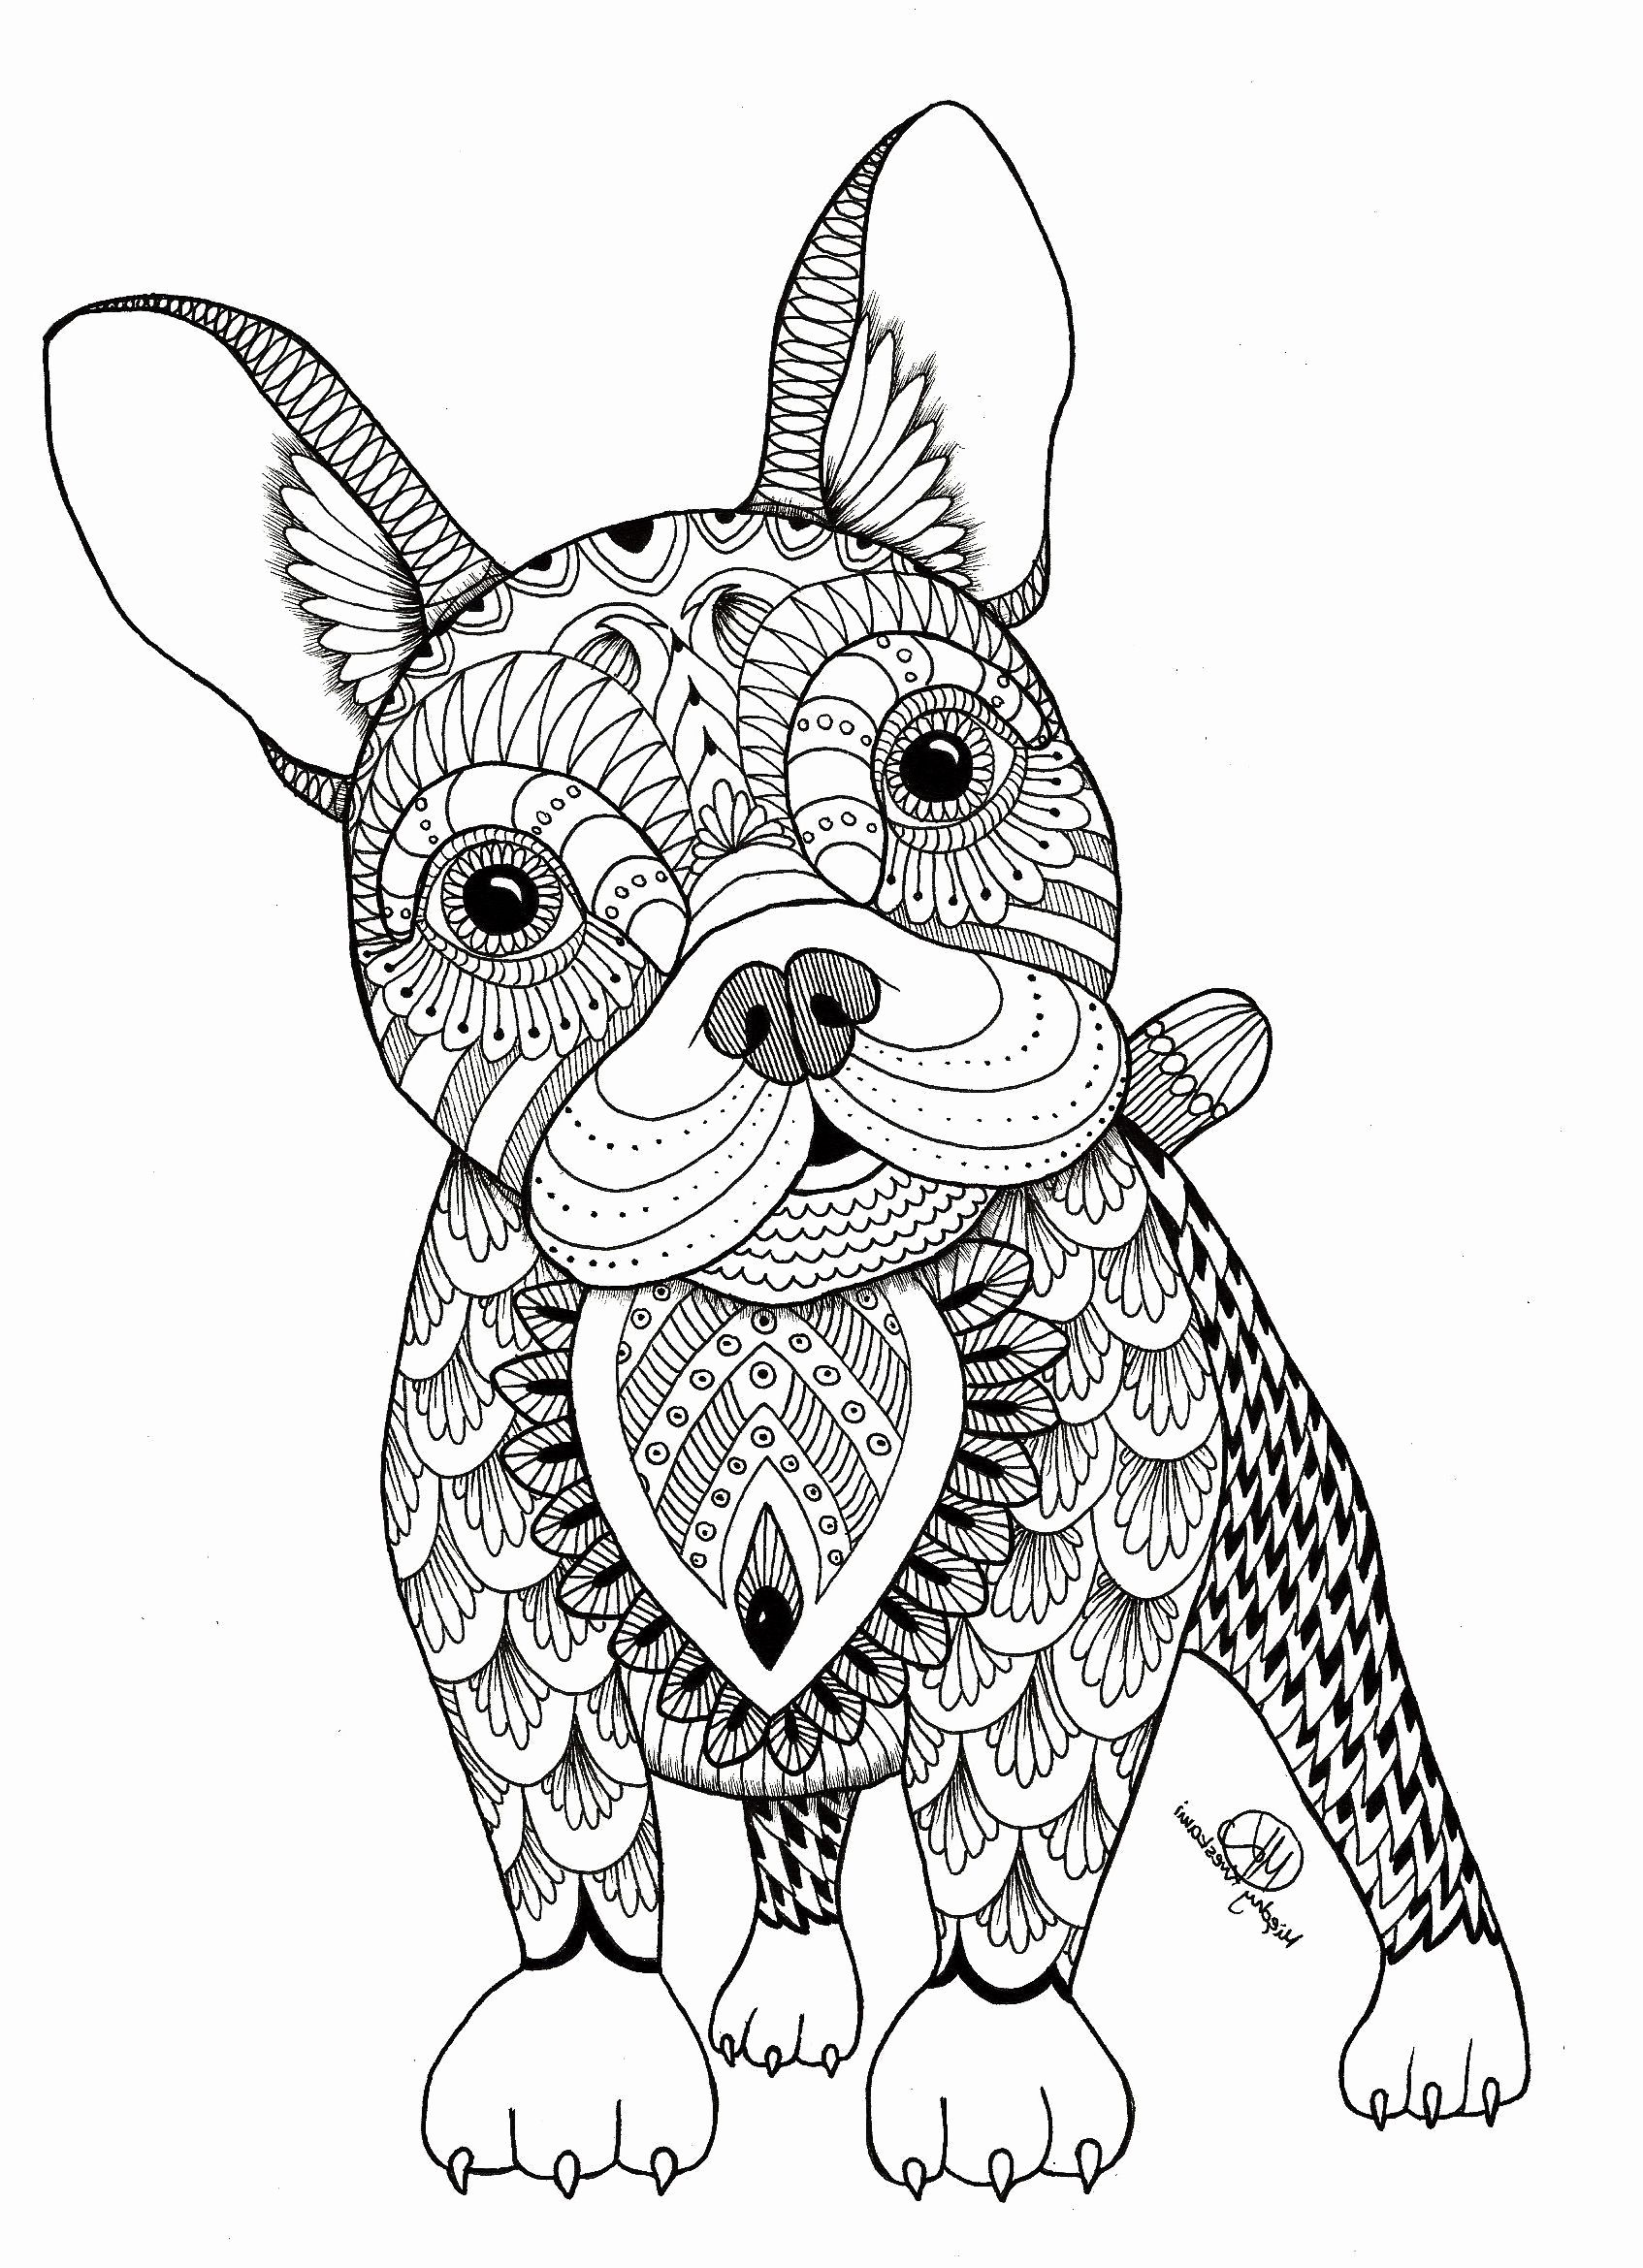 Mandala Animal Coloring Pages Kids Animal Coloring Pages Mandala Coloring Animal Coloring Books